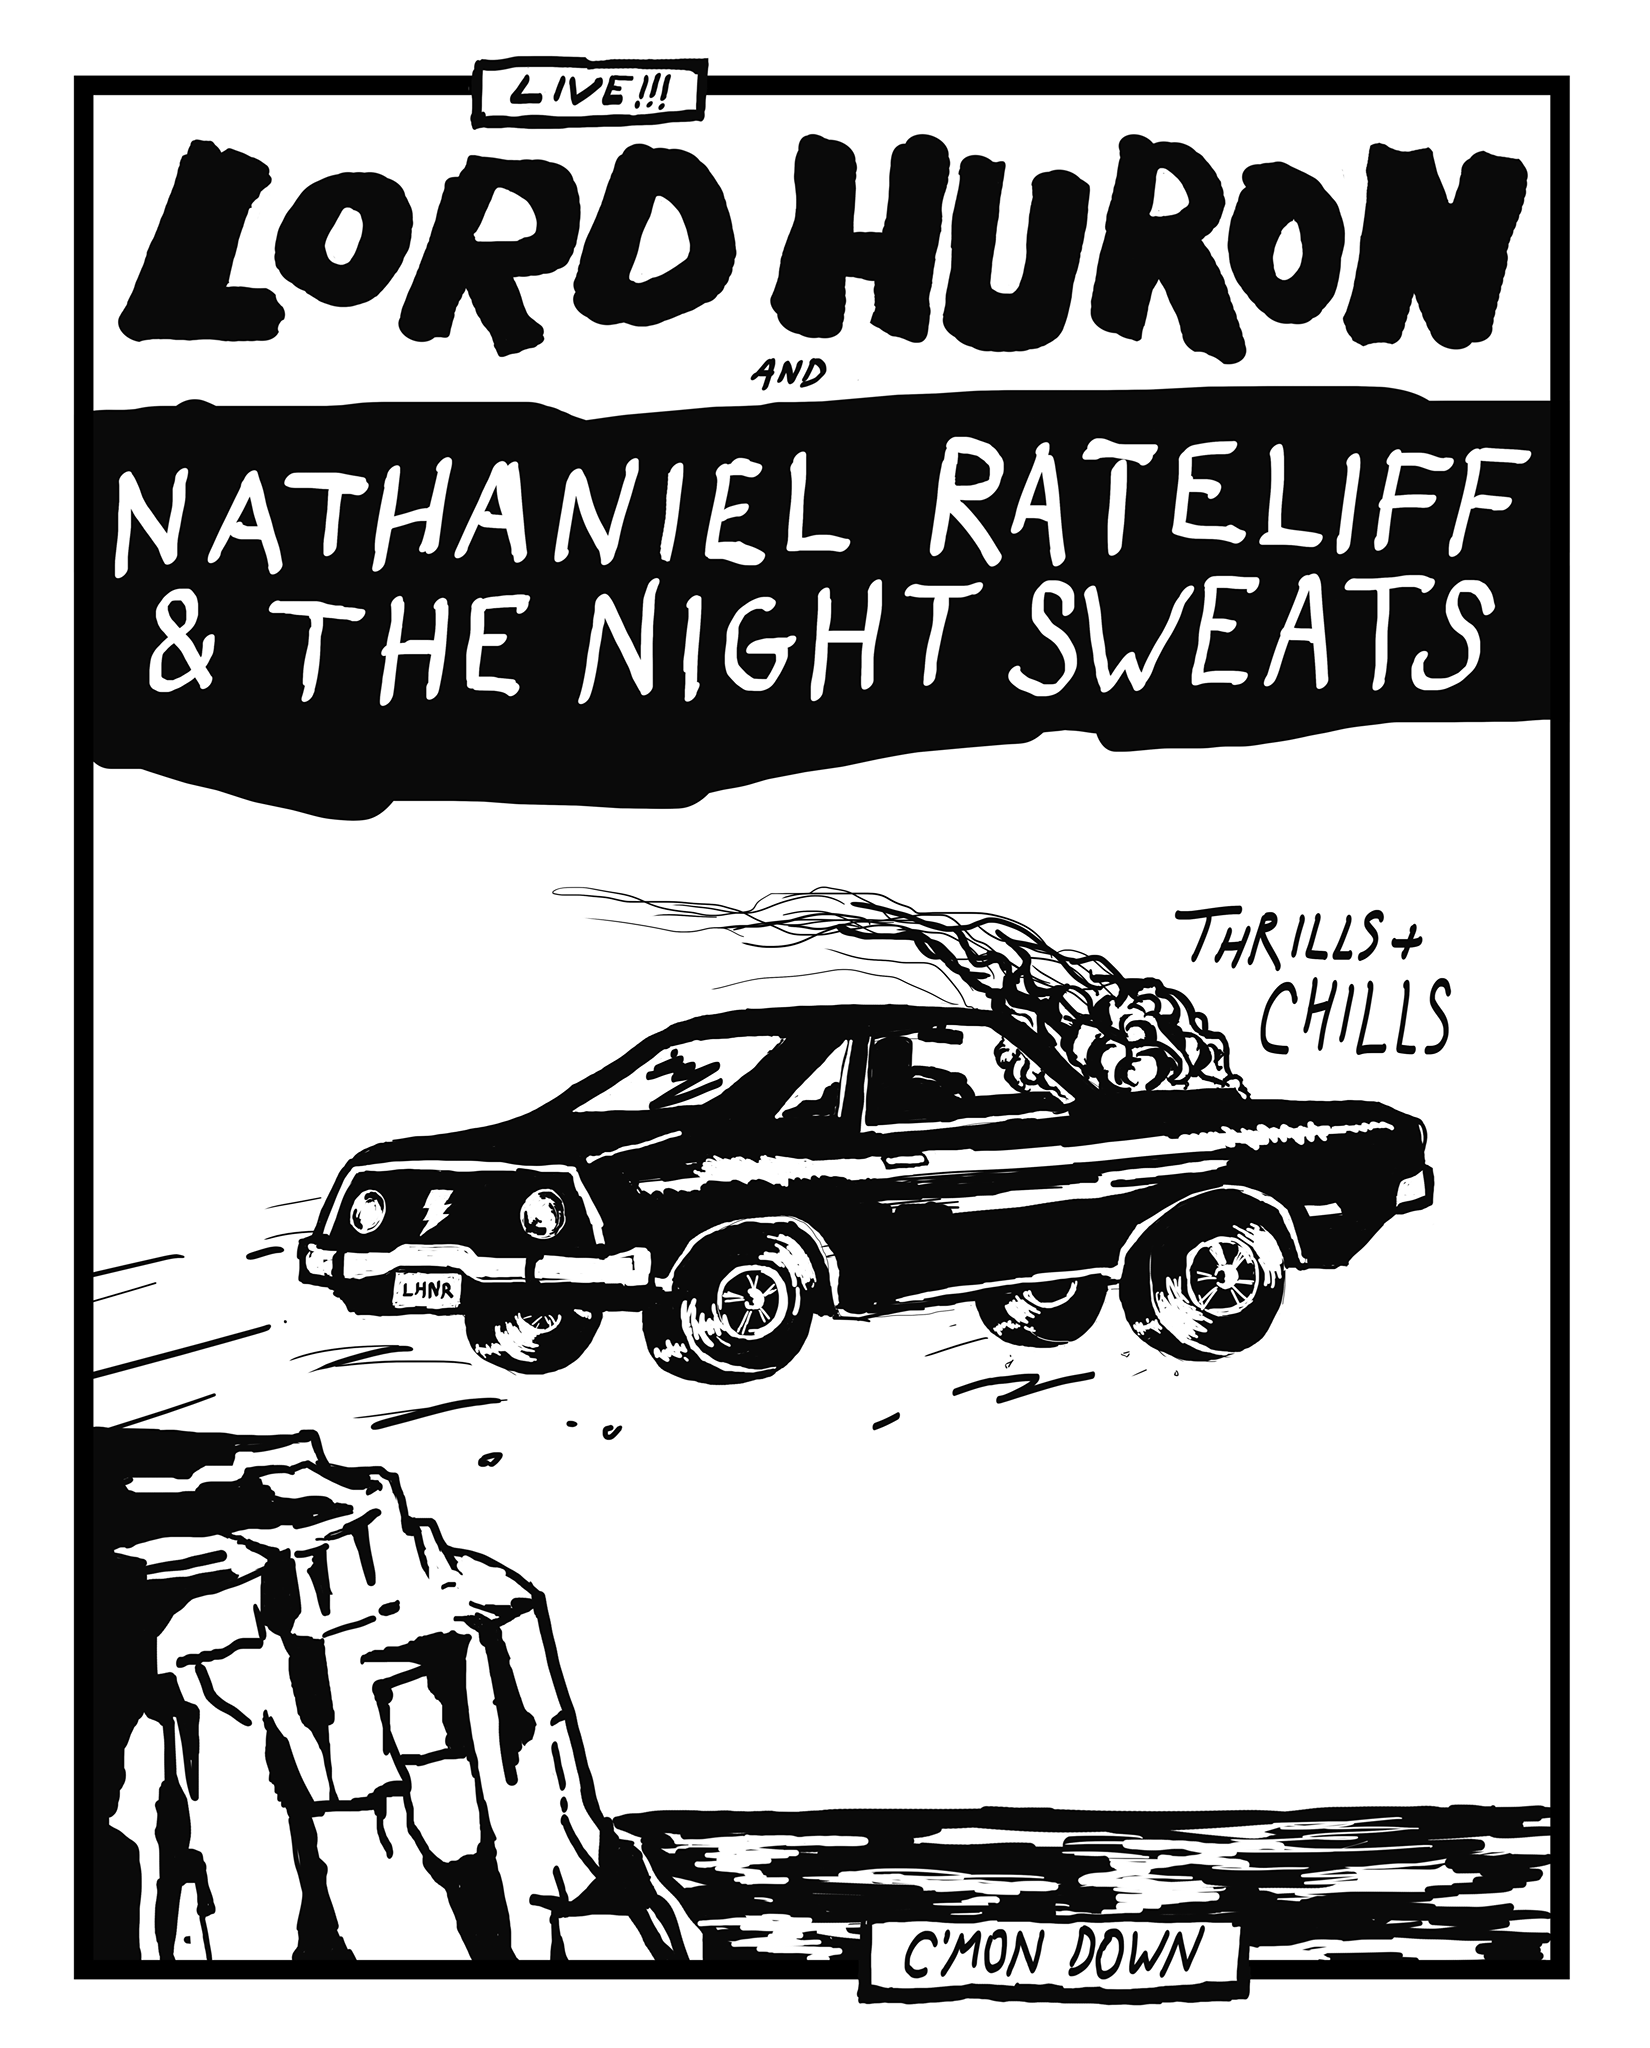 The coloring book tour setlist - Lord Huron Nathaniel Rateliff The Night Sweats Caroline Rose At Northrop Auditorium Minneapolis 31 May 2016